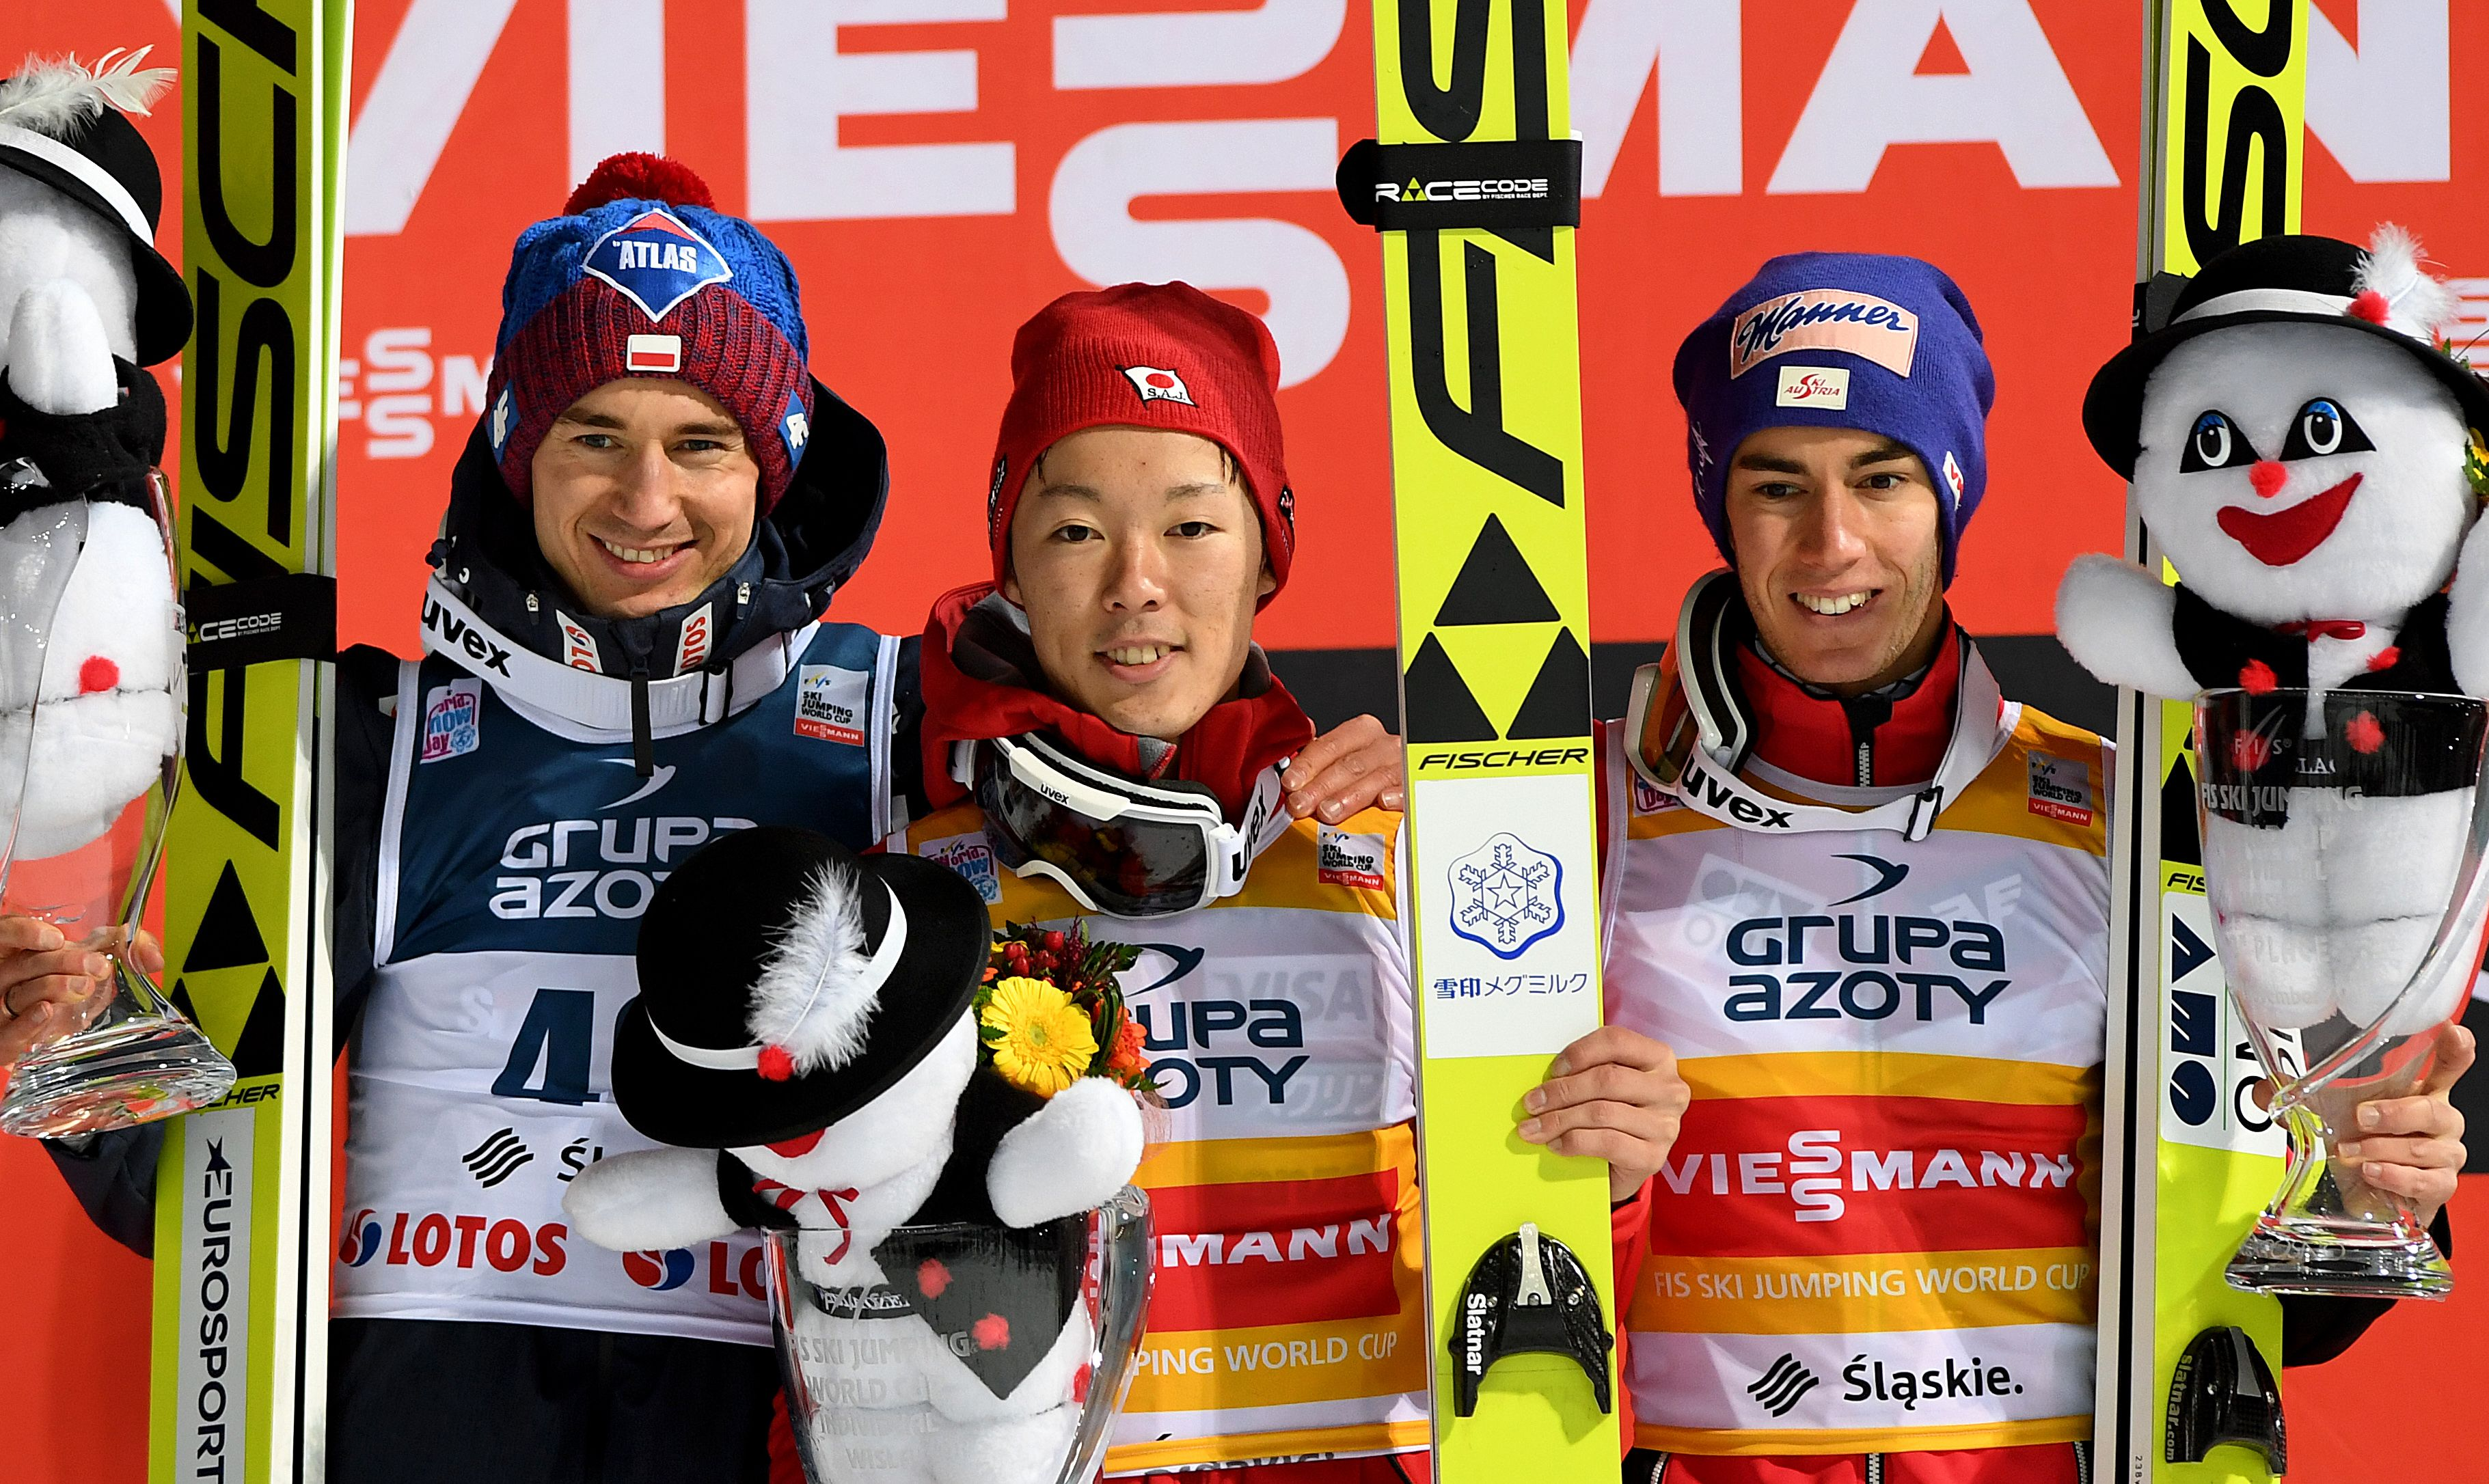 (L-R) Kamil Stoch of Poland second place, Junshiro Kobayashi of Japan first place and Stefan Kraft of Austria, third place pose at the podium after the FIS Ski Jumping World Cup in Wisla, Poland on November 18, 2017. Junshiro Kobayashi of Japan won the competition ahead of Poland's Kamil Stoch (2nd) and Austria's Stefan Kraft (3rd). / AFP PHOTO / JANEK SKARZYNSKI